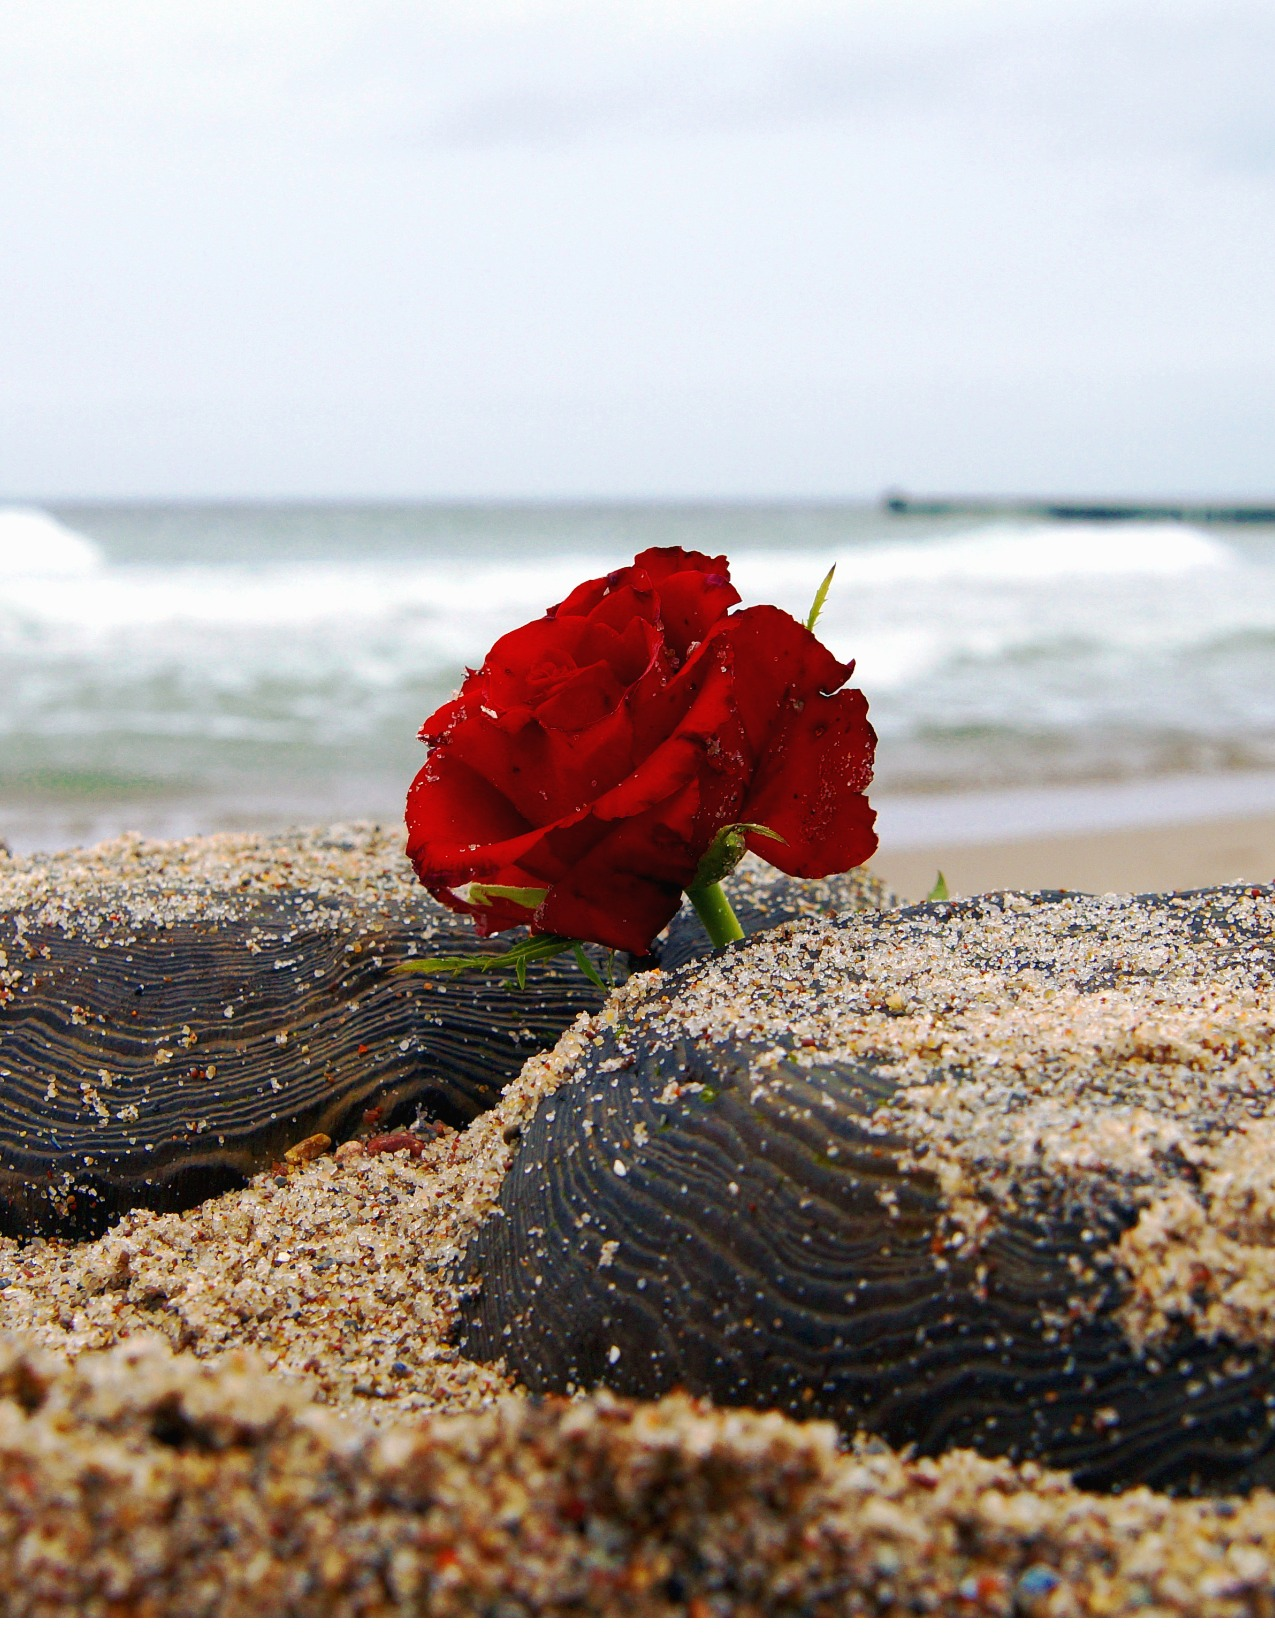 Flower on the Beach Signifying the Loss of a Loved One